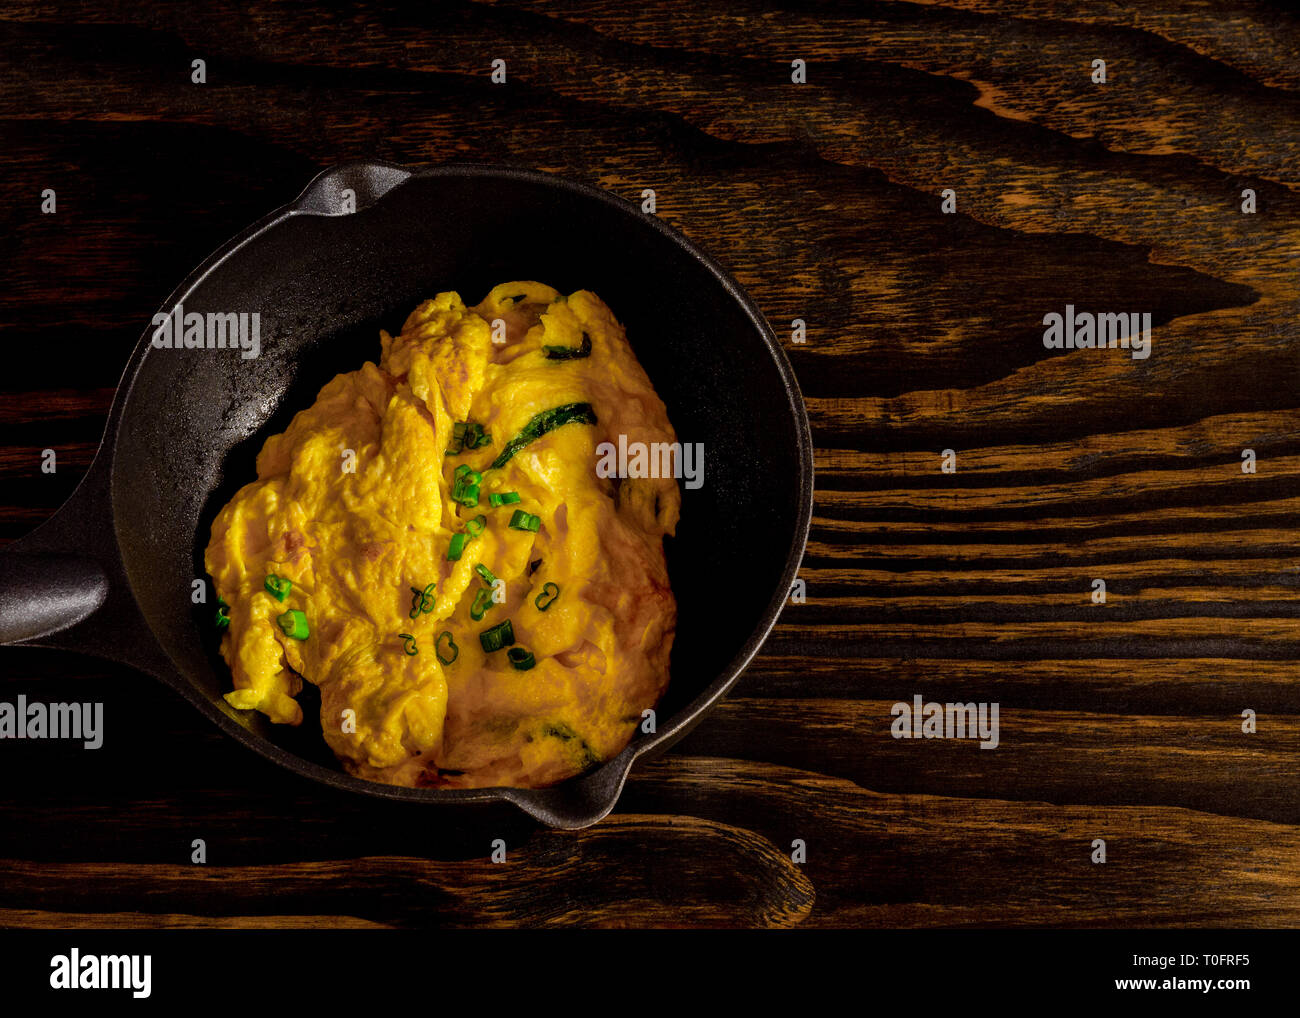 Scramble eggs, omblet, in pan. Eggs with spring onion. - Stock Image